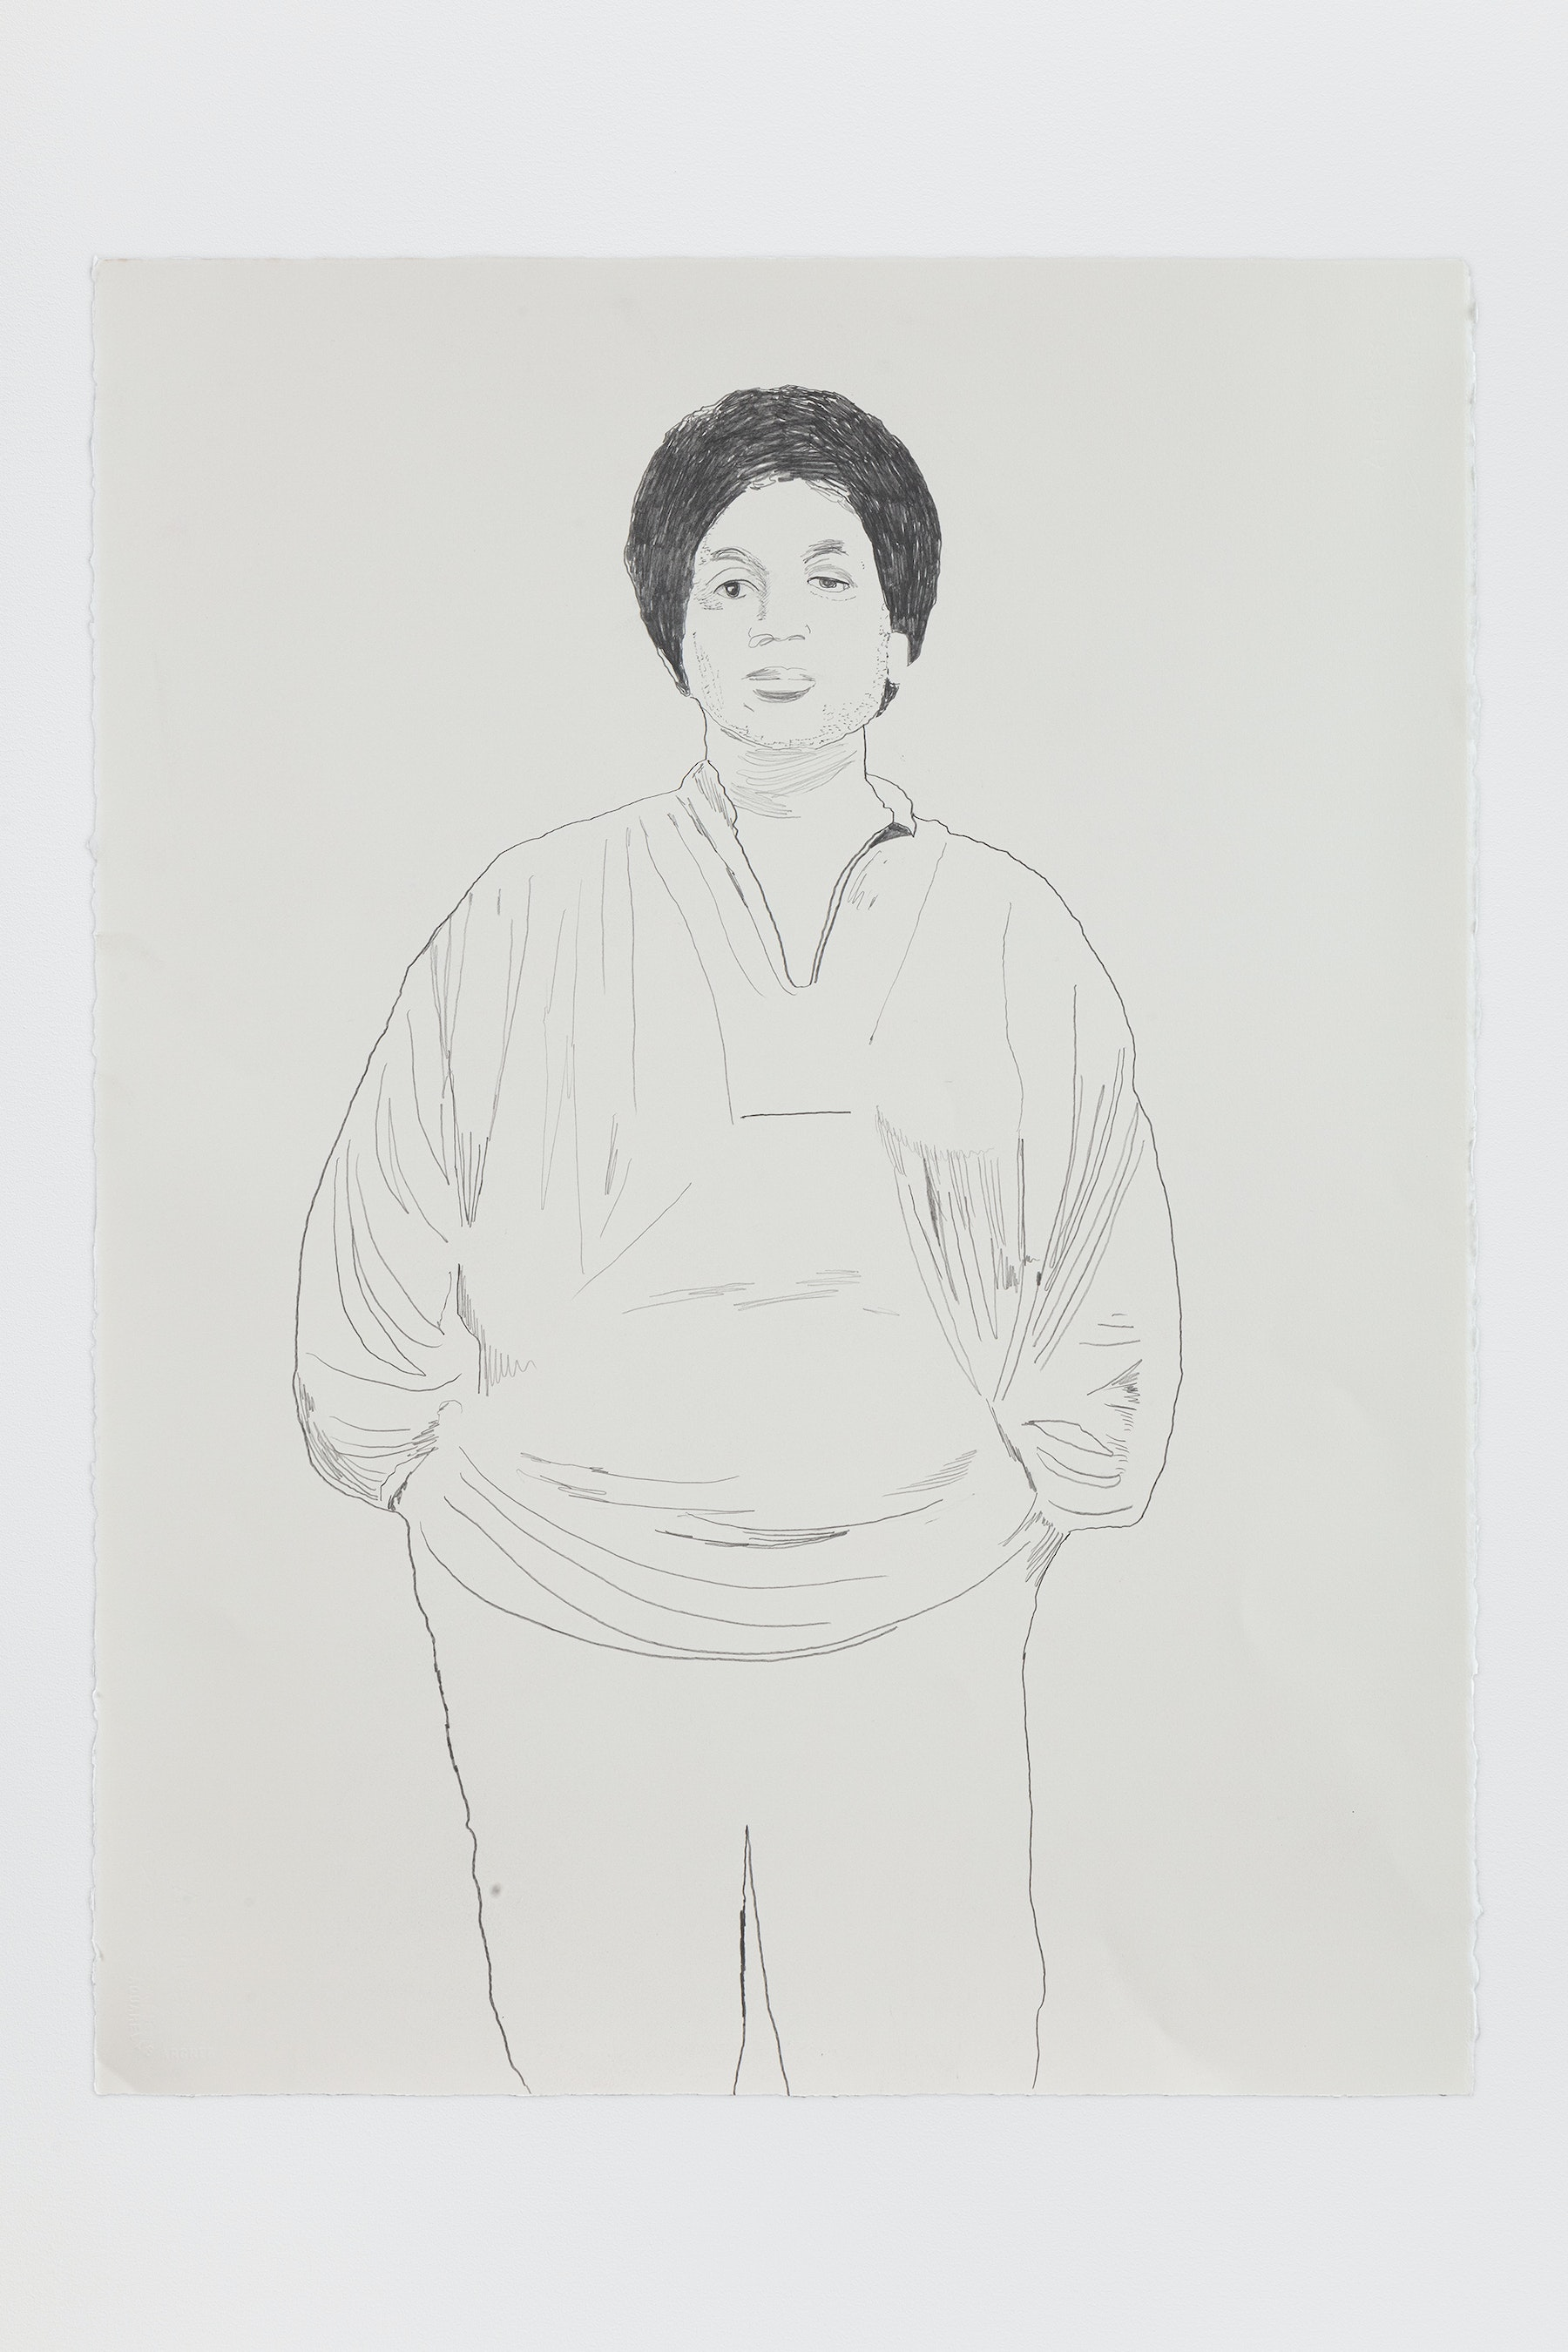 "Whitney Bedford ""Audre Lorde,"" 2020 Graphite on Arches Paper 30 x 22"" [HxW] (76.2 x 55.88 cm) Inventory #BED378 Courtesy of the artist and Vielmetter Los Angeles Photo credit: Evan Bedford"